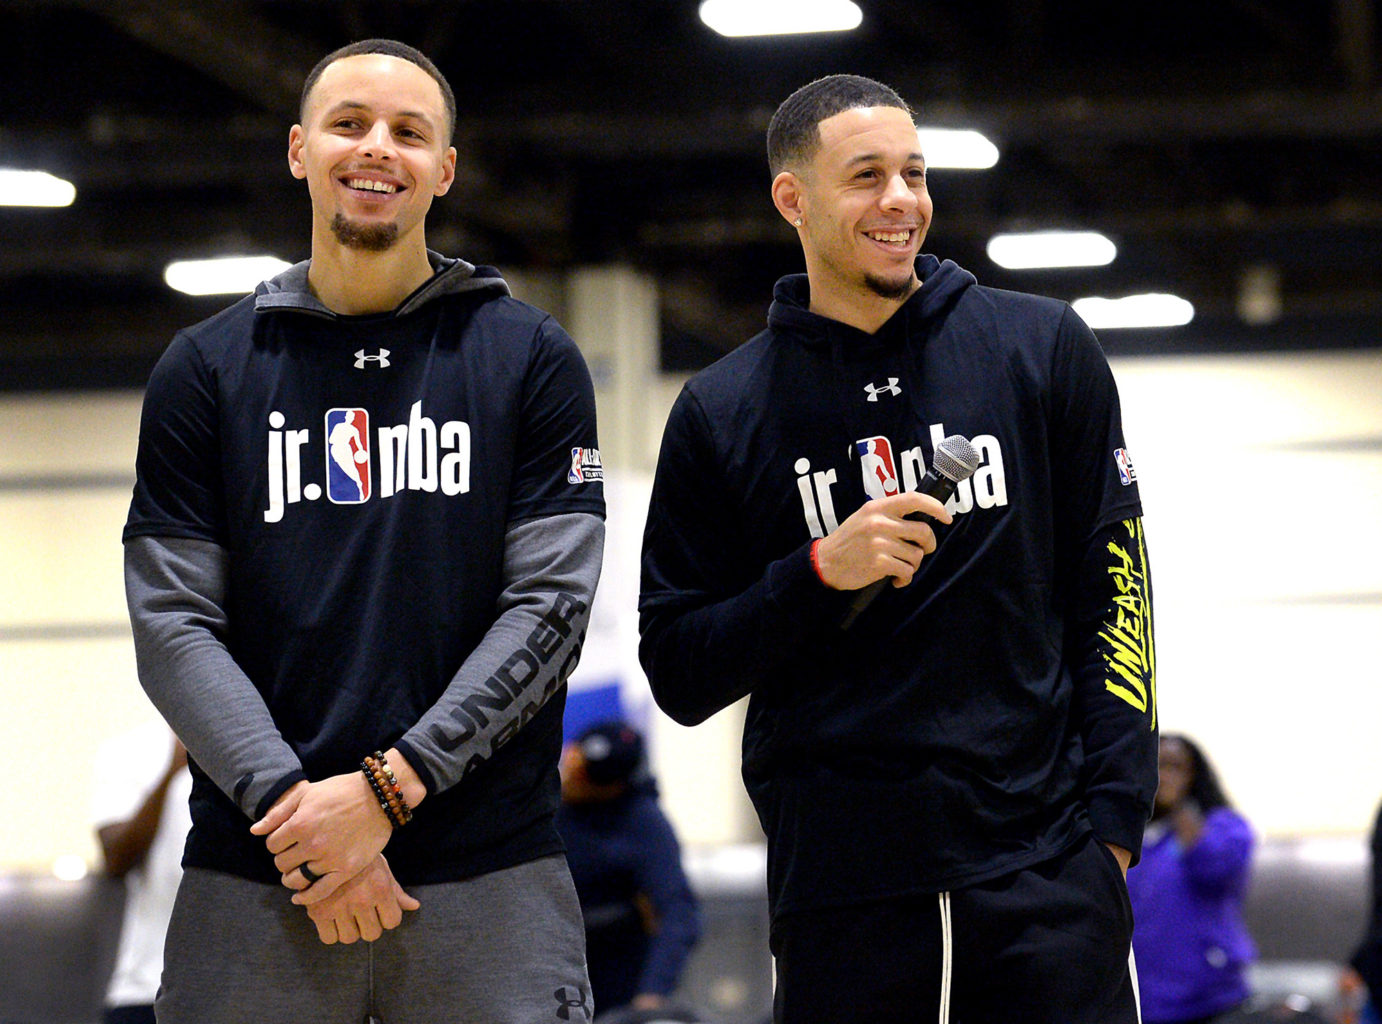 NBA stars Golden State Warriors Stephen Curry, left, smiles as his brother, Seth Curry of the Portland Trail Blazers, right, addresses students during the Fourth Annual Jr. NBA Day at the Charlotte Convention Center on Friday, Feb. 15, 2019, in Charlotte, N.C. (Jeff Siner/Charlotte Observer/TNS)